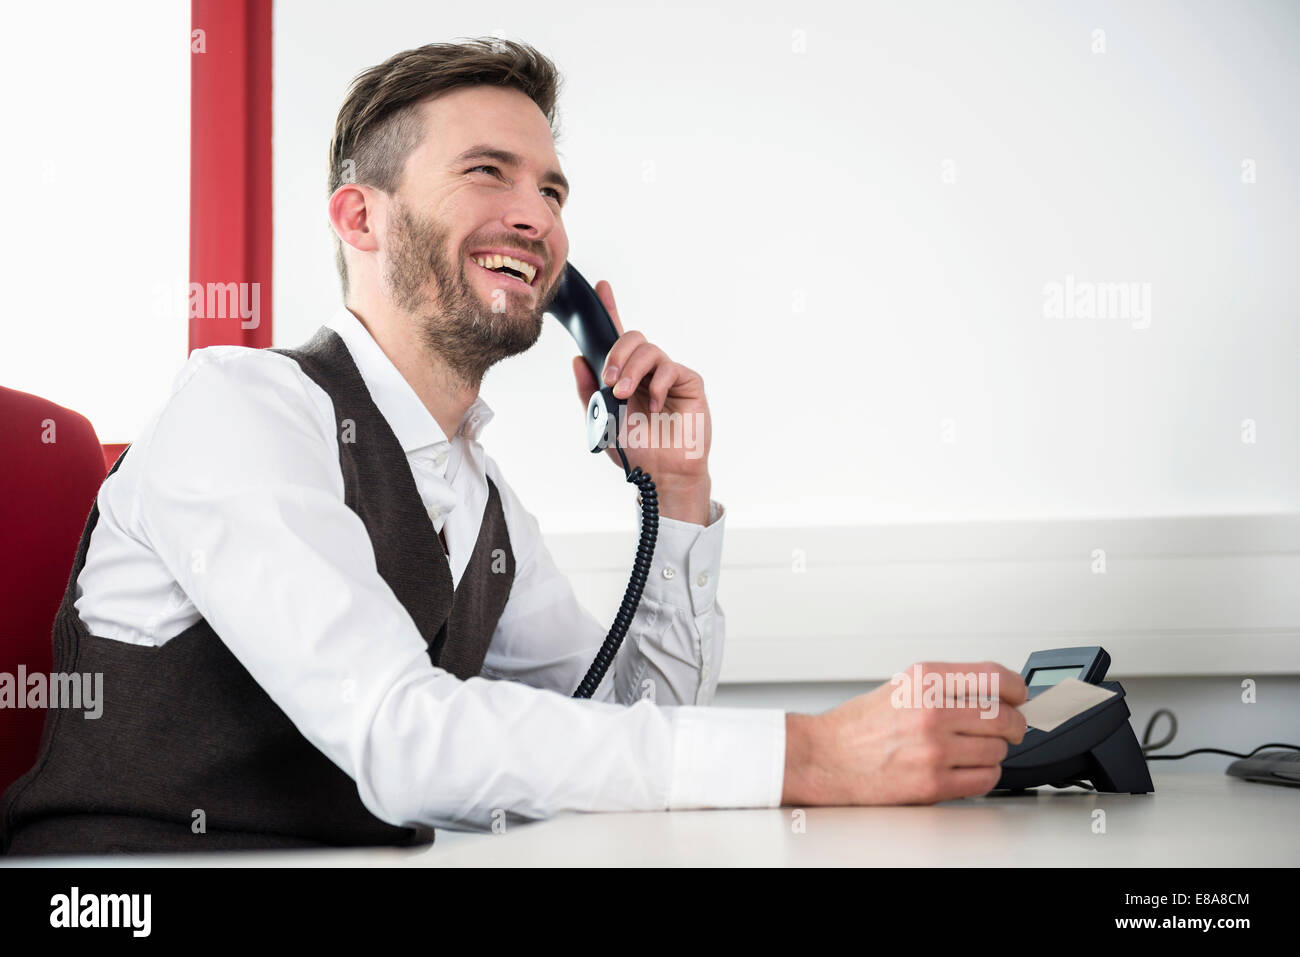 Man telephone conversation laughing office - Stock Image